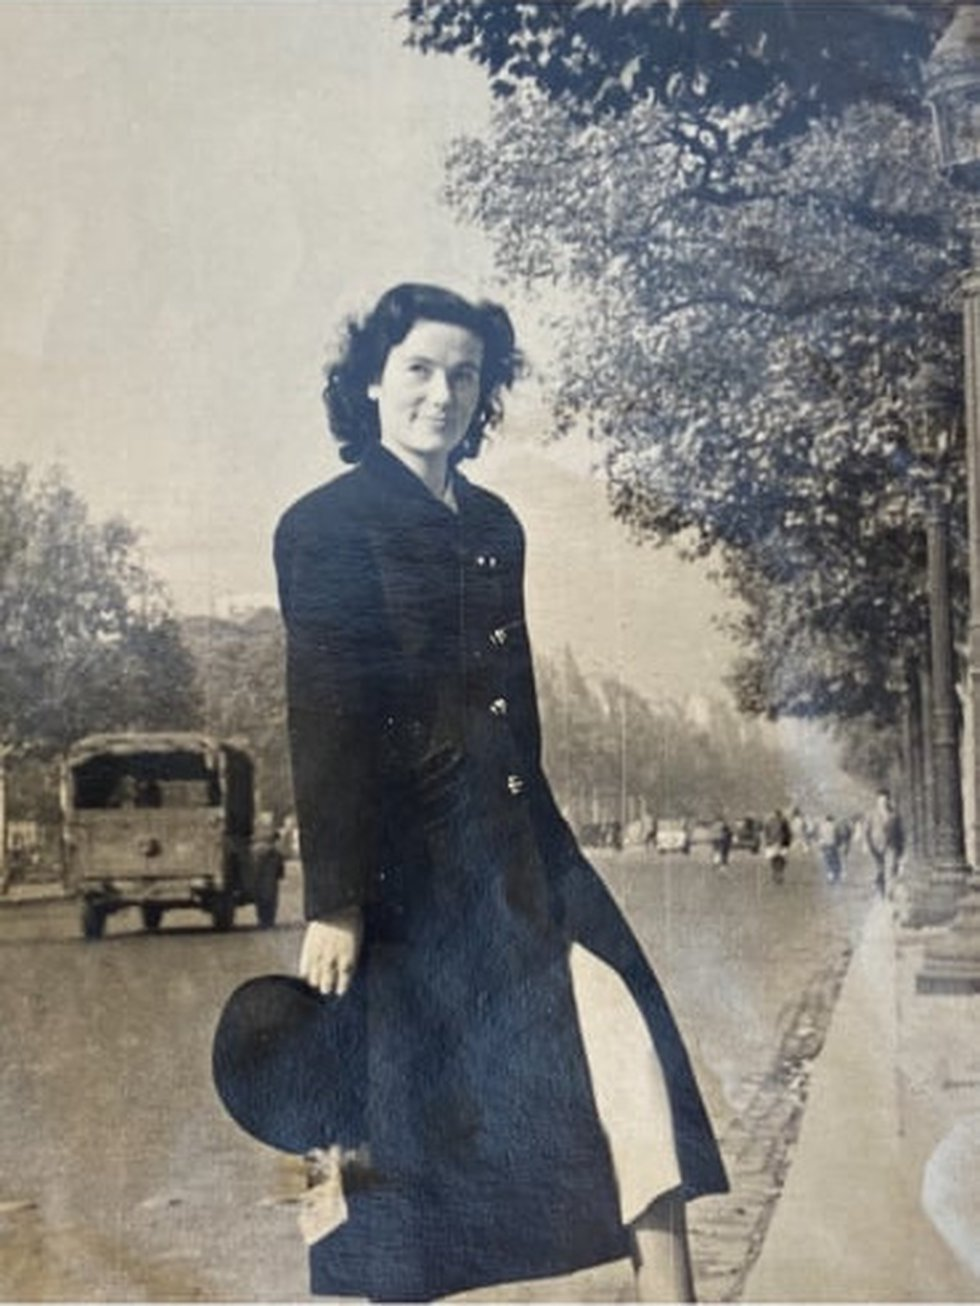 Jaqueline and Jack dated while they were stationed in France.